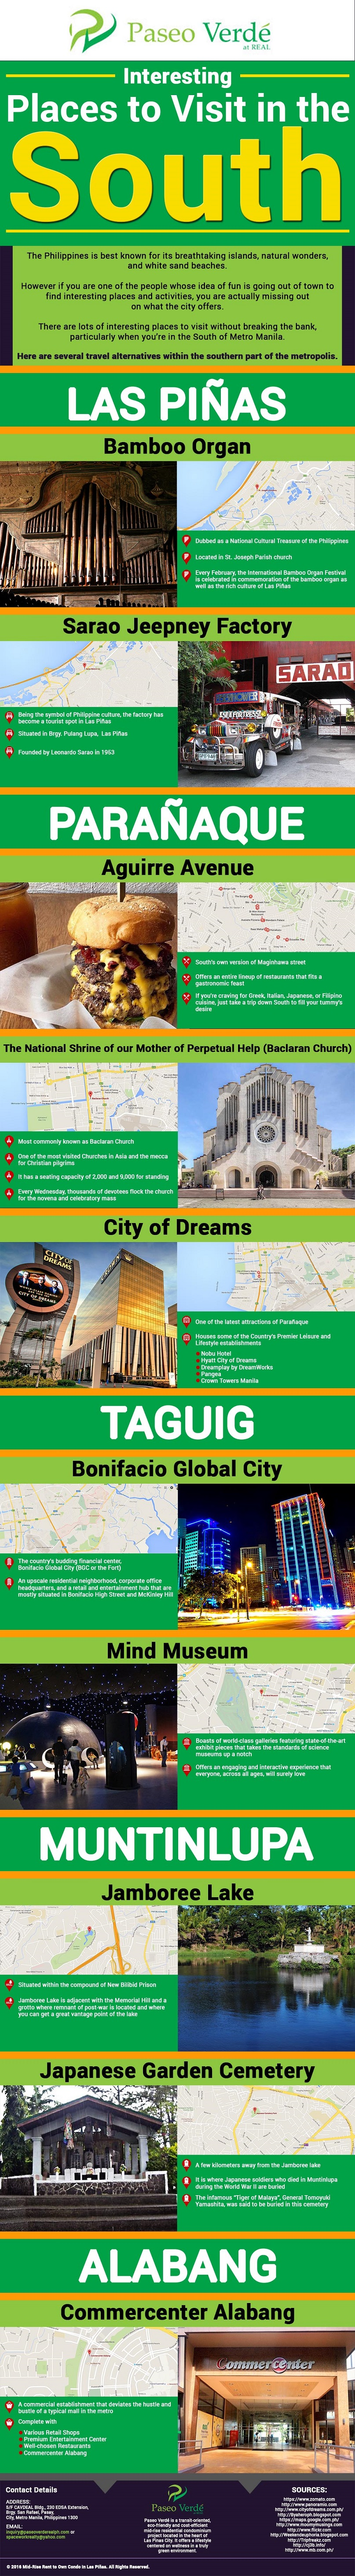 Interesting Places To Visit in the South Philippines infographic